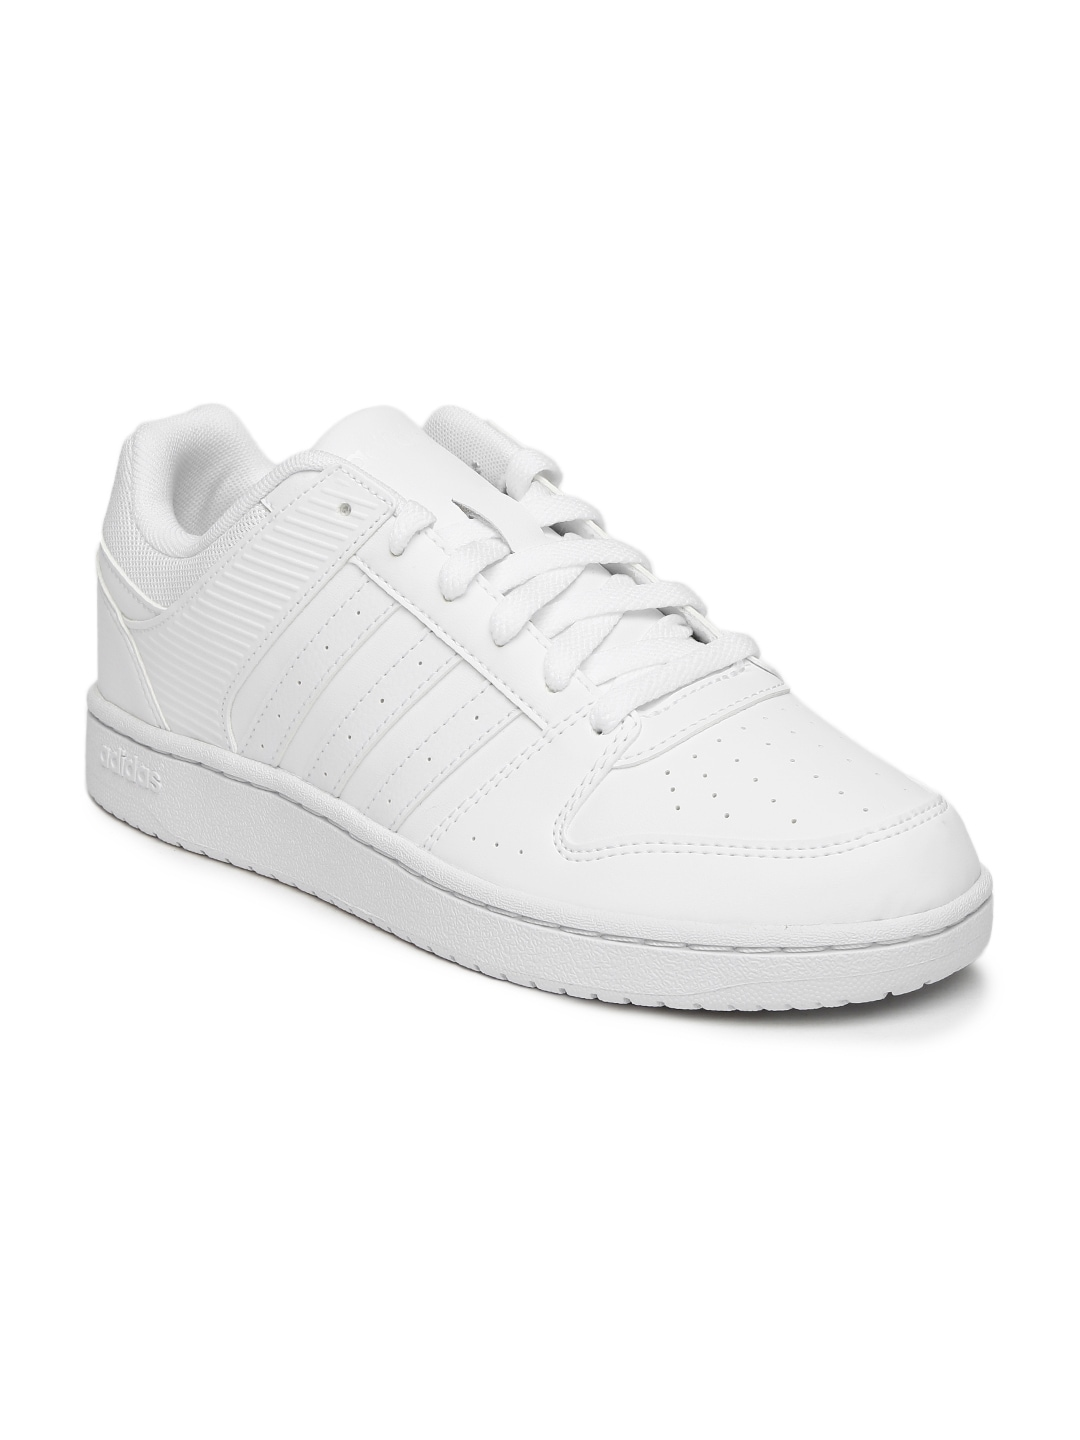 adidas neo shoes all white los granados apartment co uk